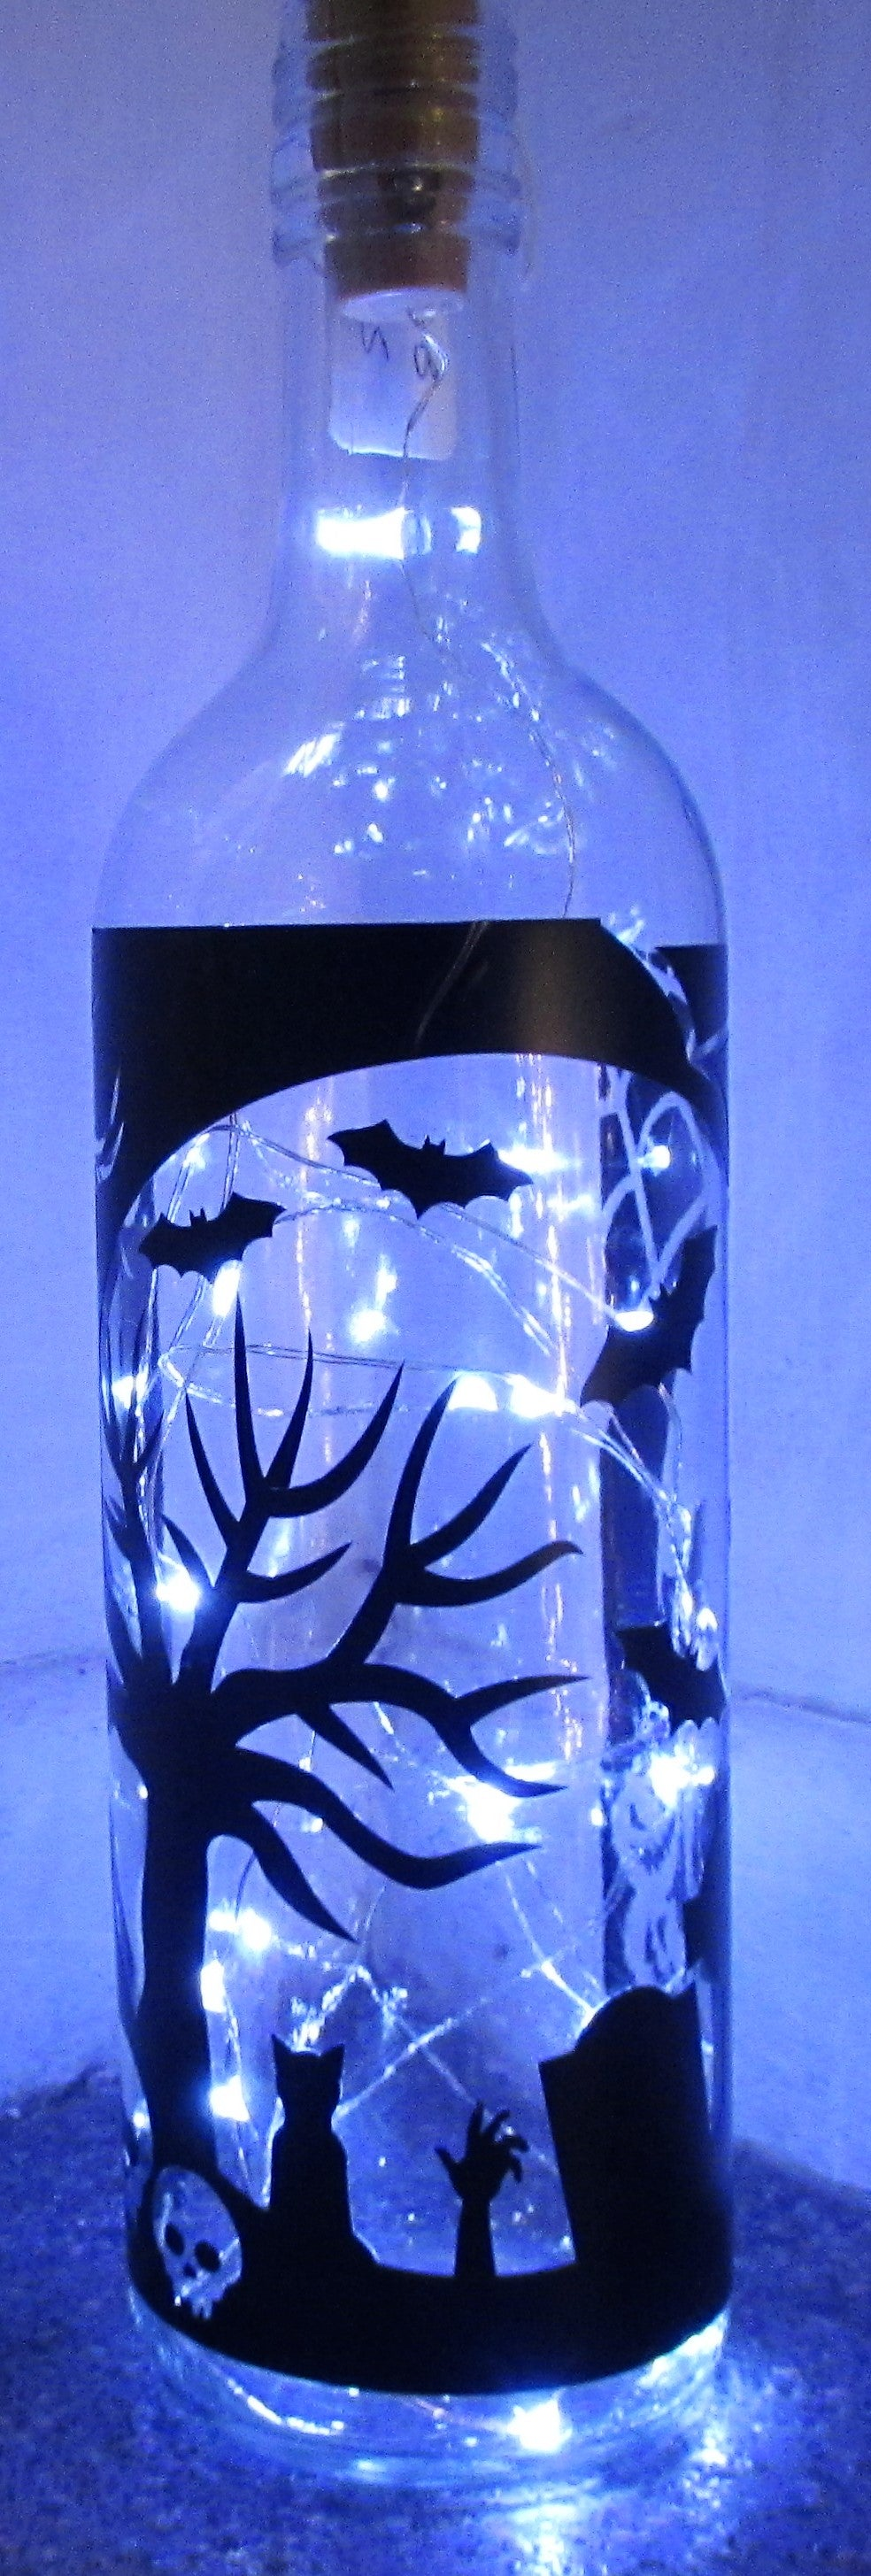 Unique handcrafted Halloween light up bottle with grave yard scene